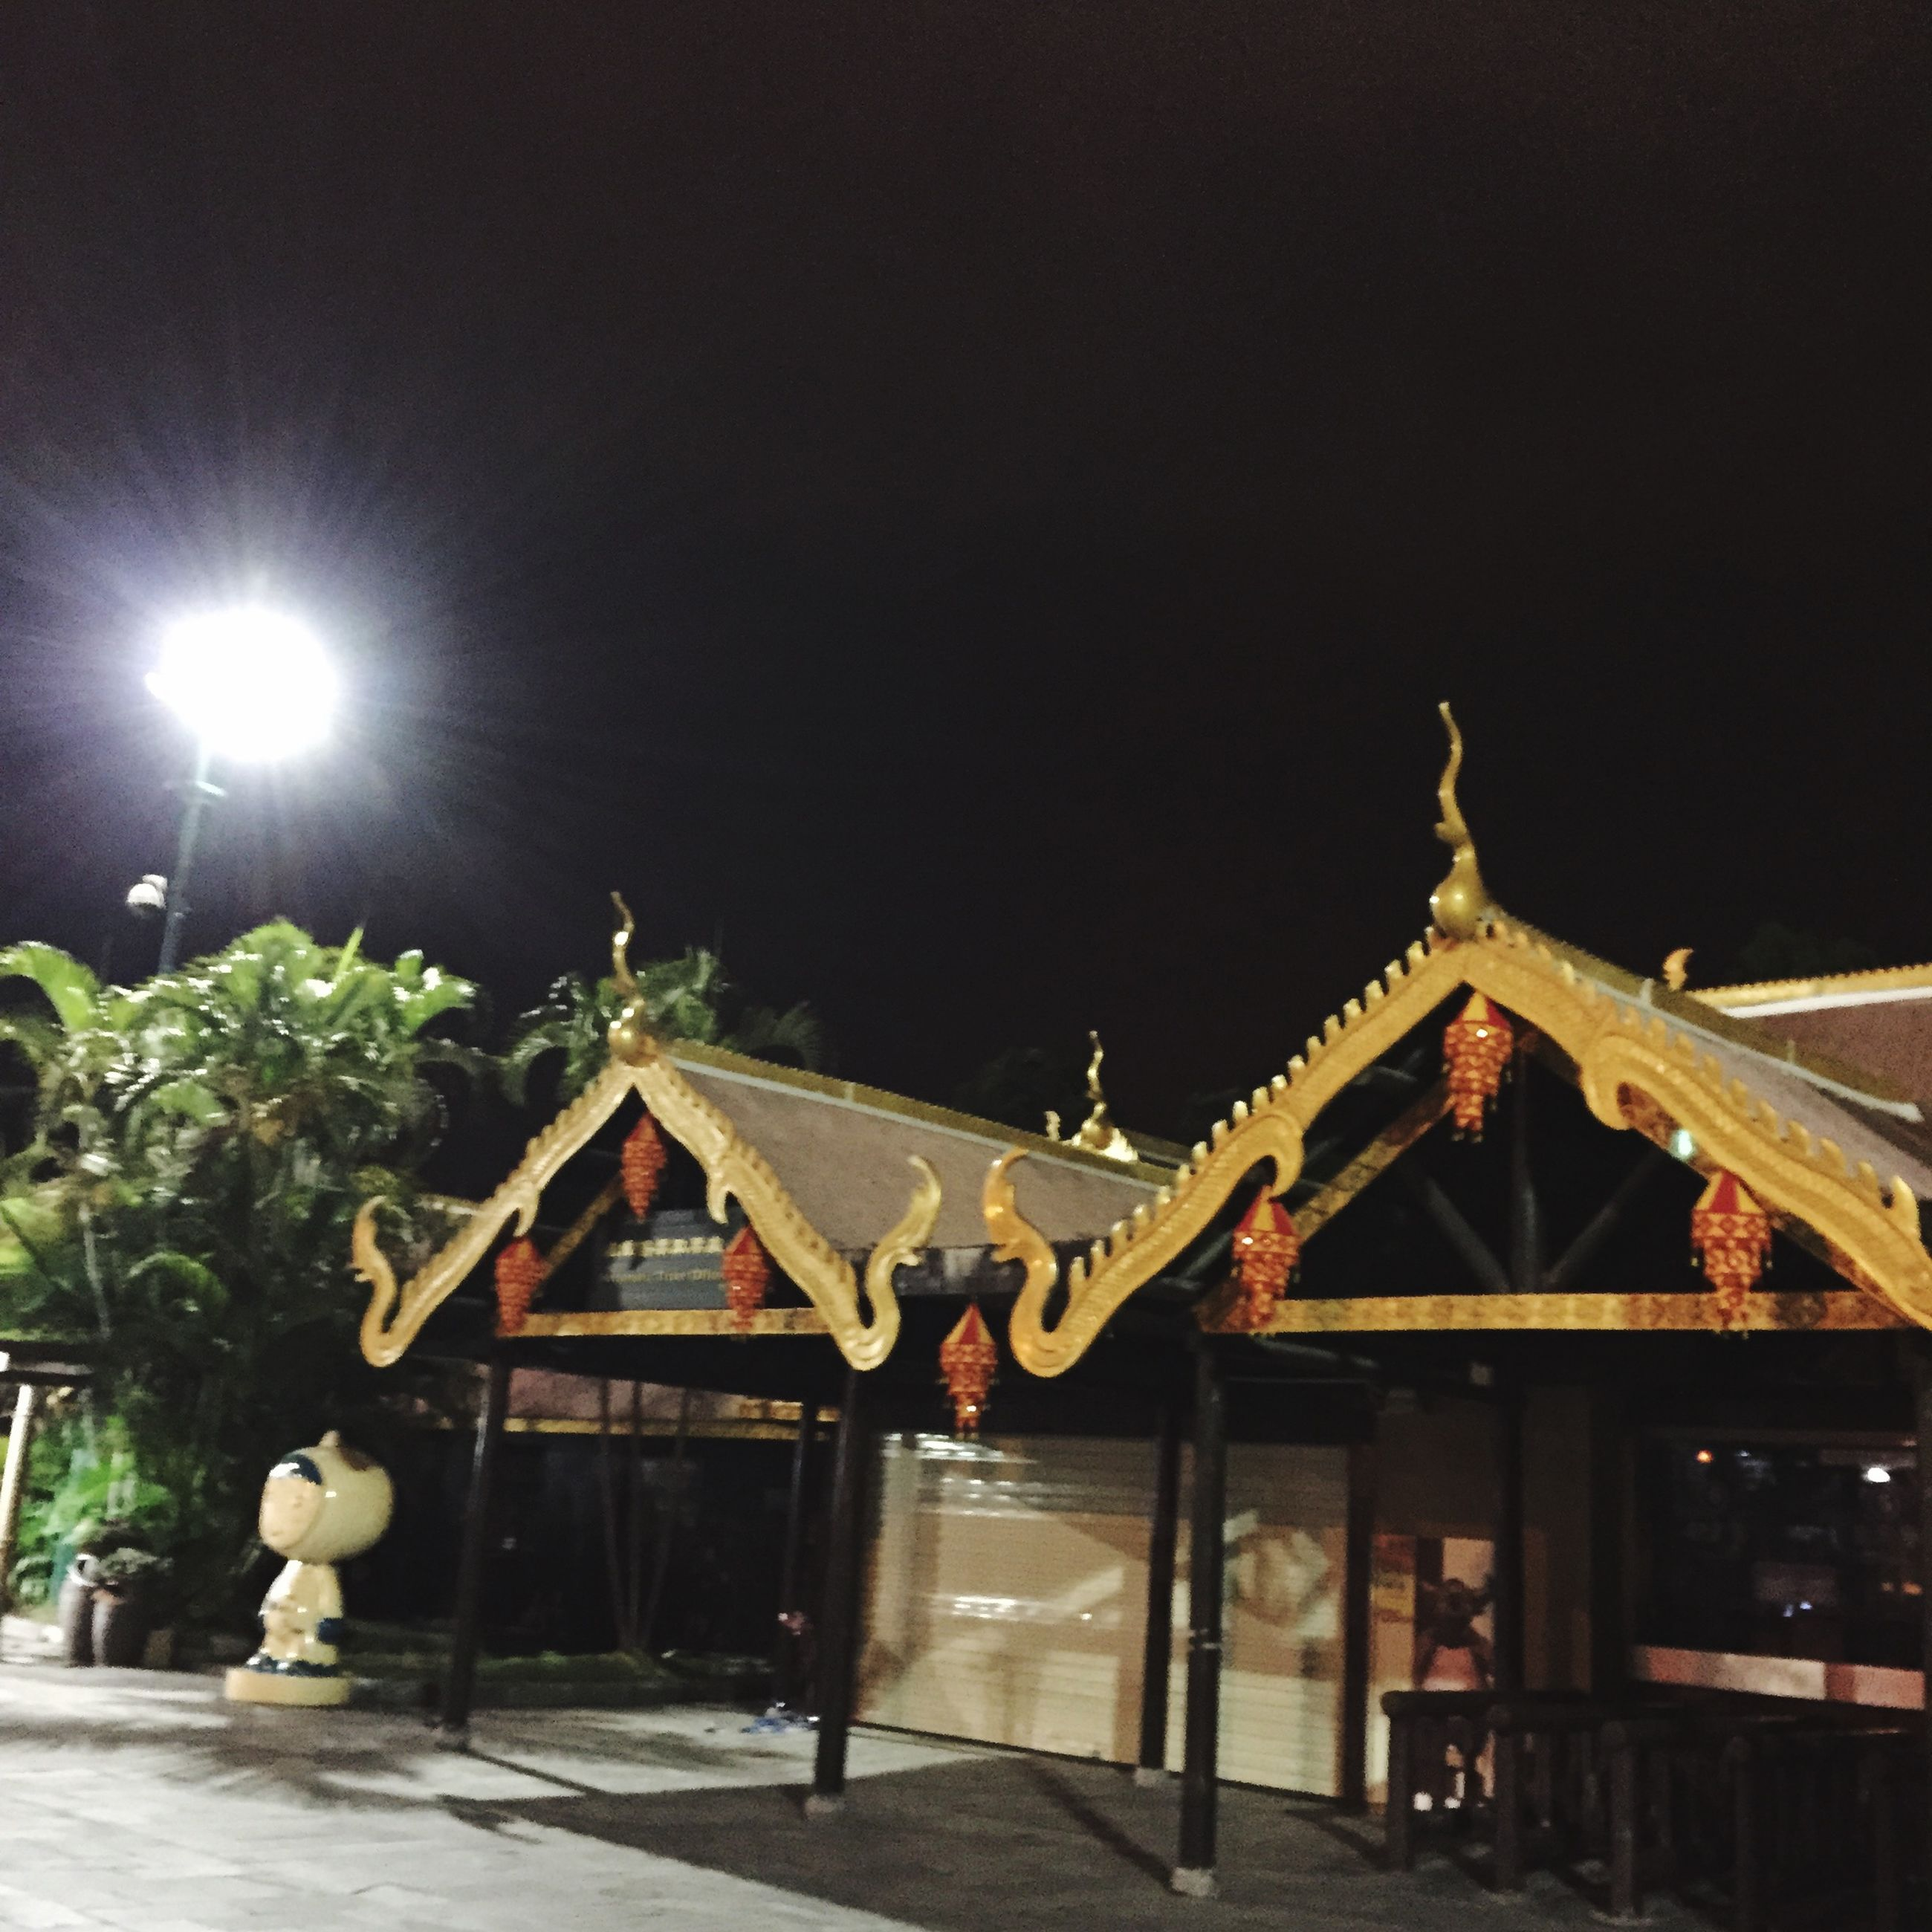 architecture, built structure, building exterior, illuminated, night, clear sky, religion, place of worship, house, low angle view, spirituality, lighting equipment, roof, tradition, outdoors, temple - building, facade, sky, no people, copy space